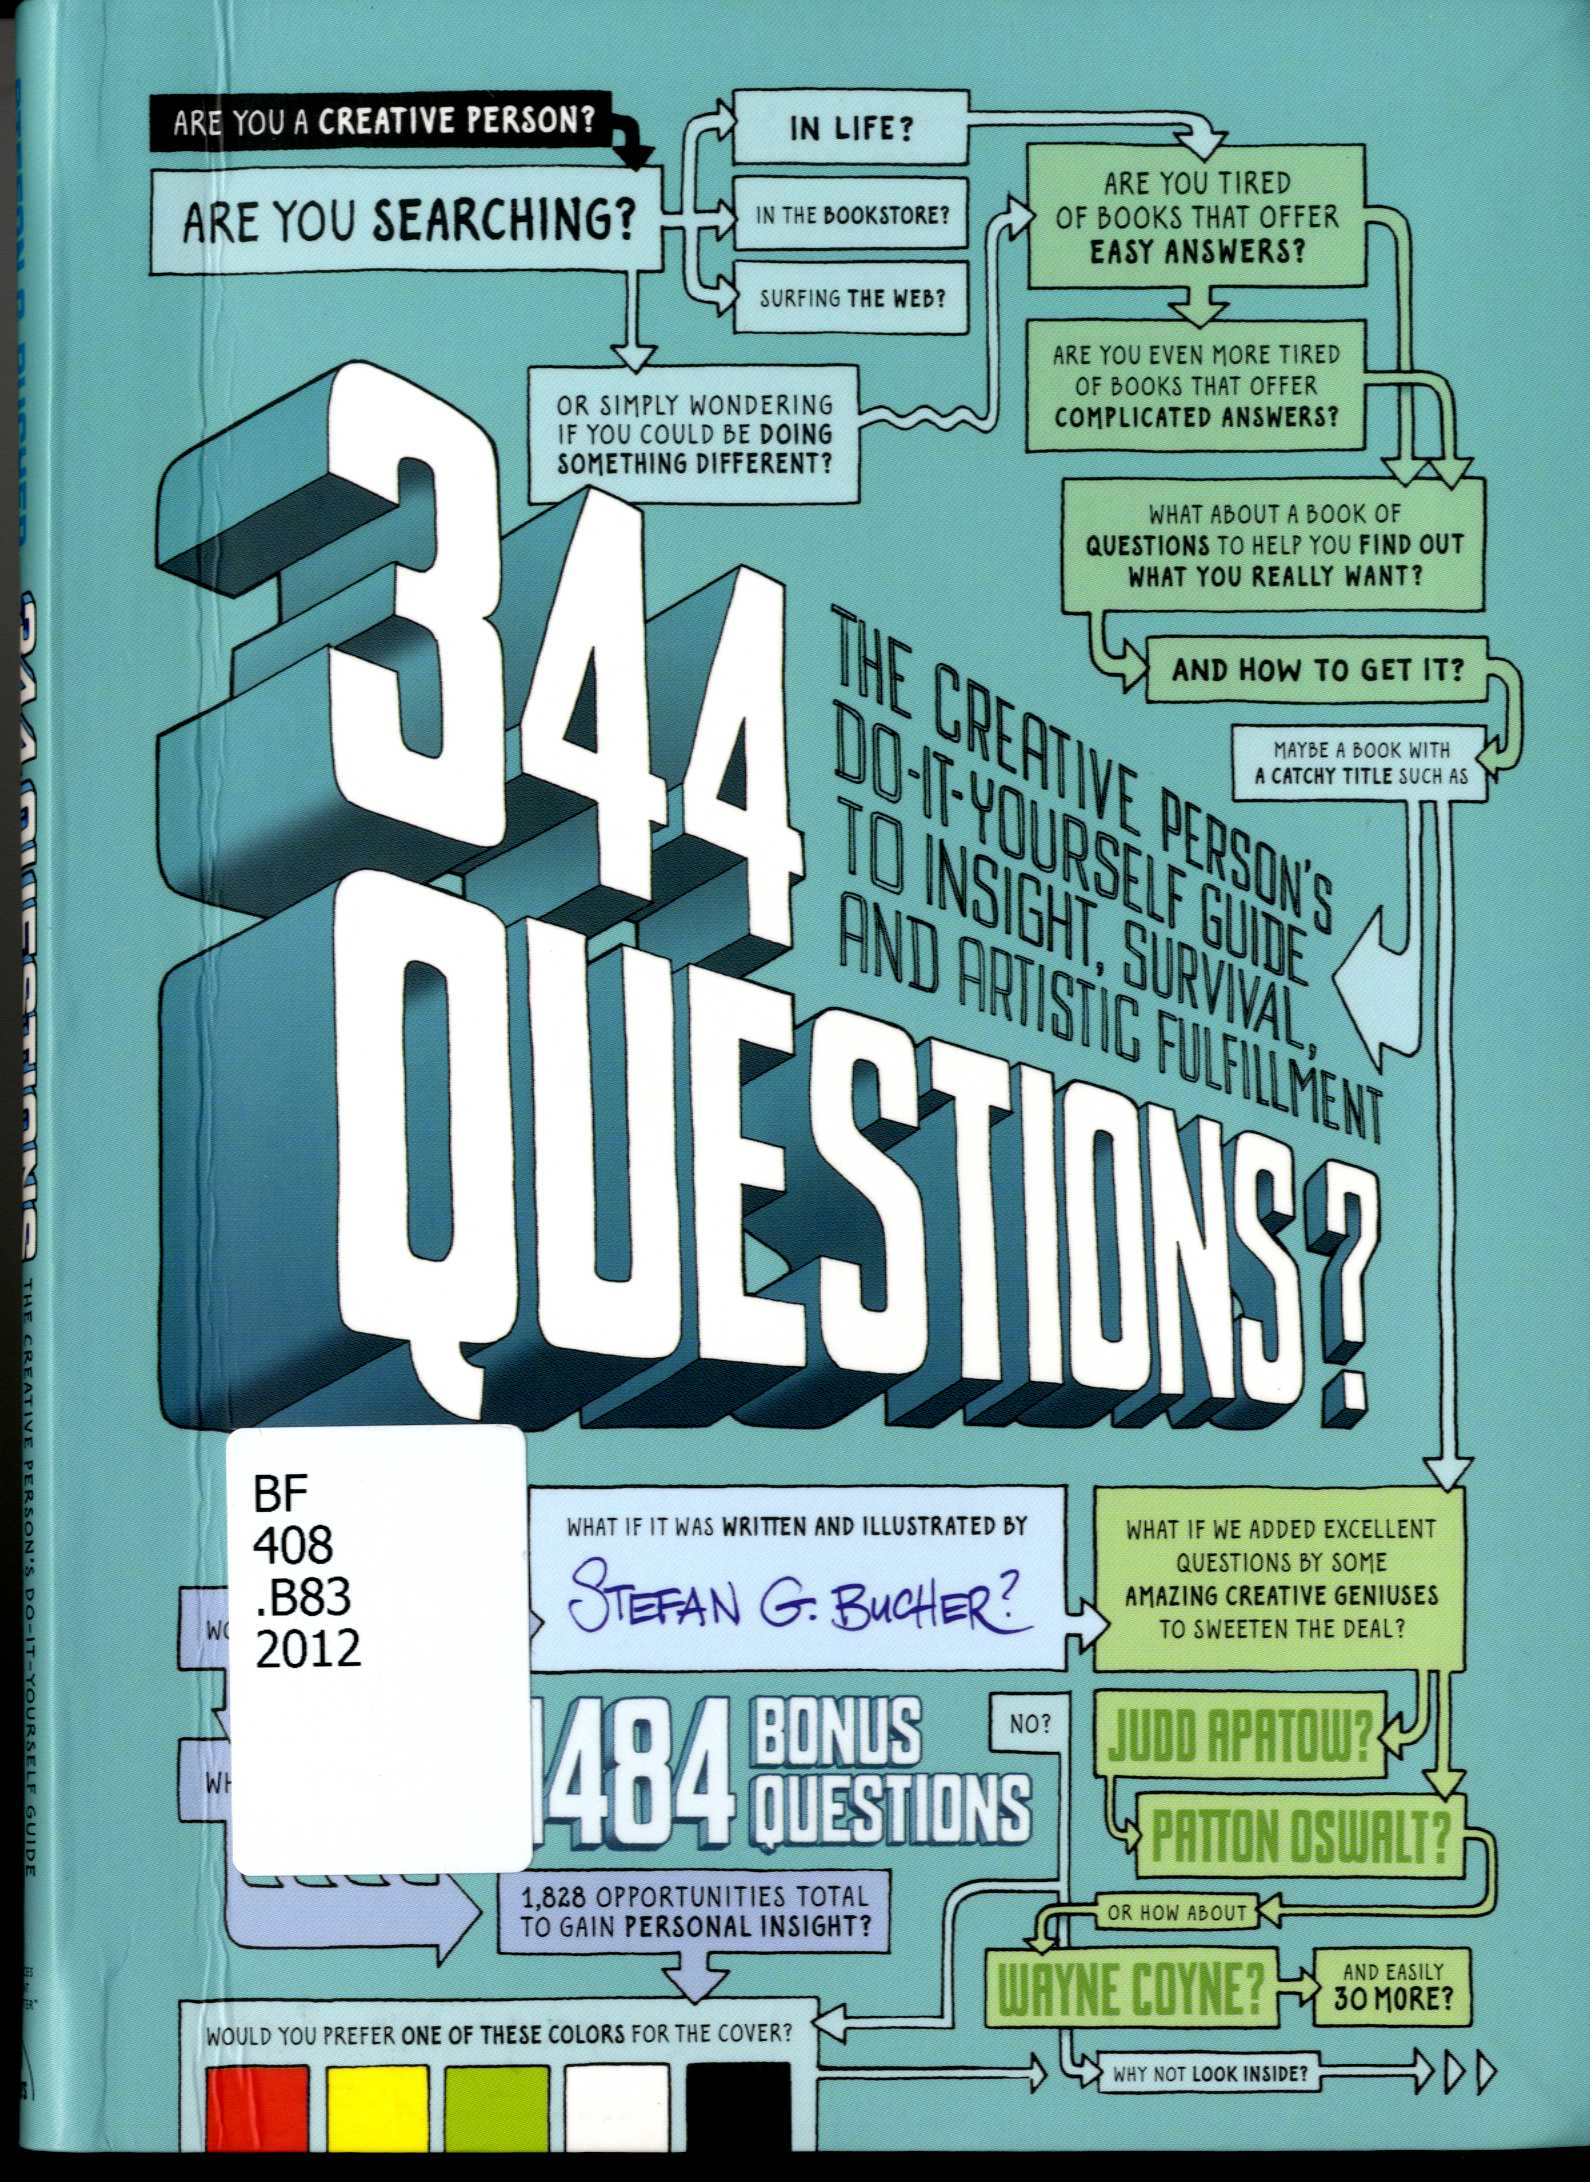 344questions001